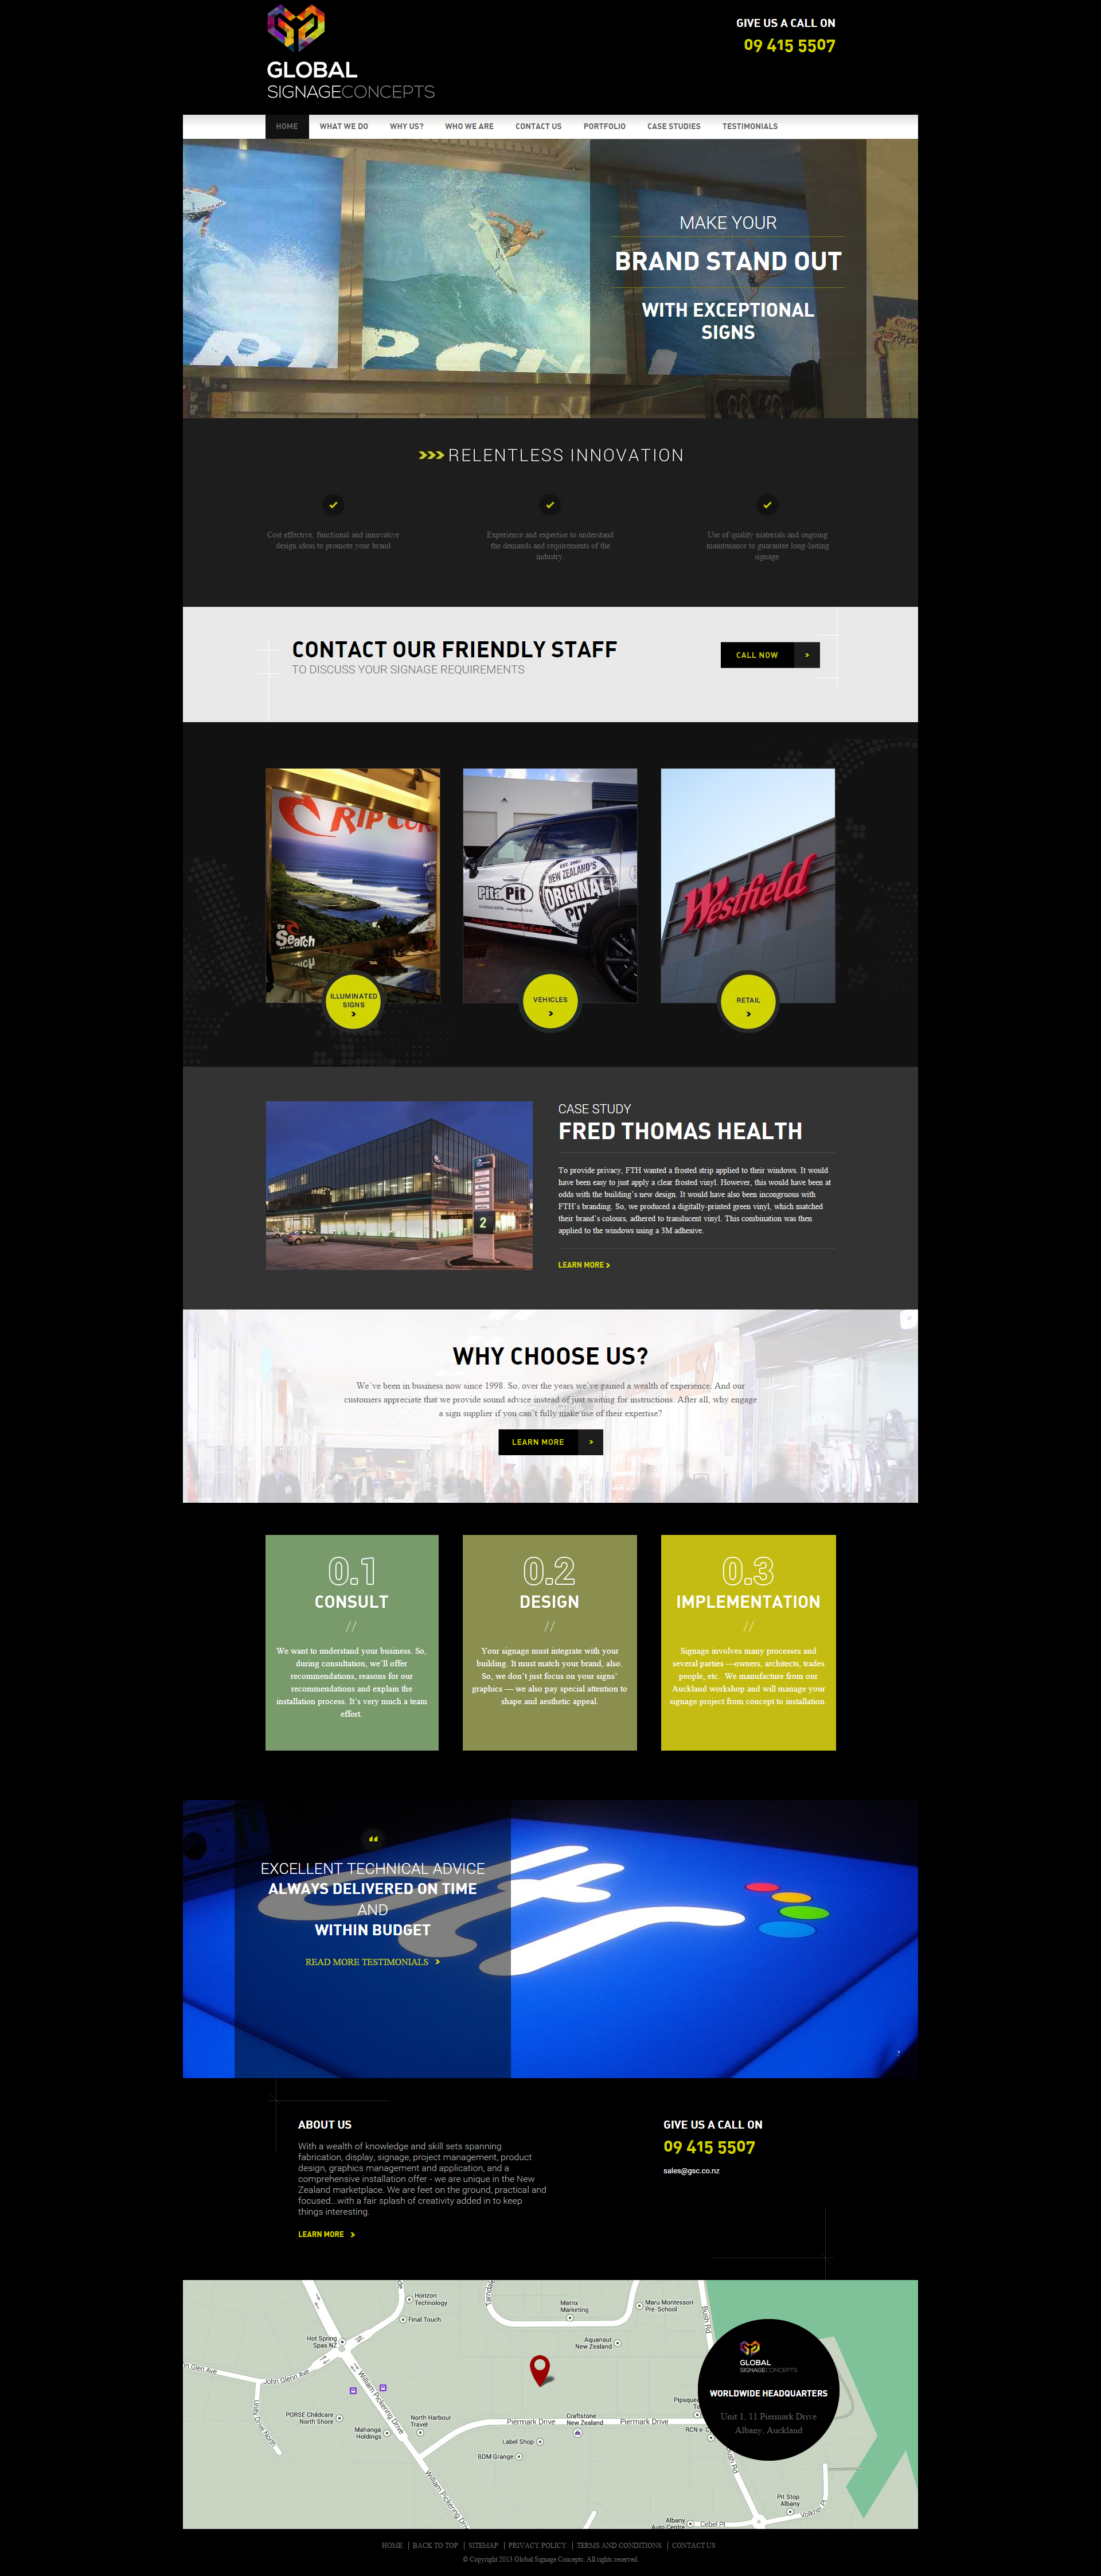 A Zeald Website Has Helped Global Signage Concepts Http Www Gsc Co Nz To Achieve Their Business Dream Visit Ww Website Design Website Redesign Web Design